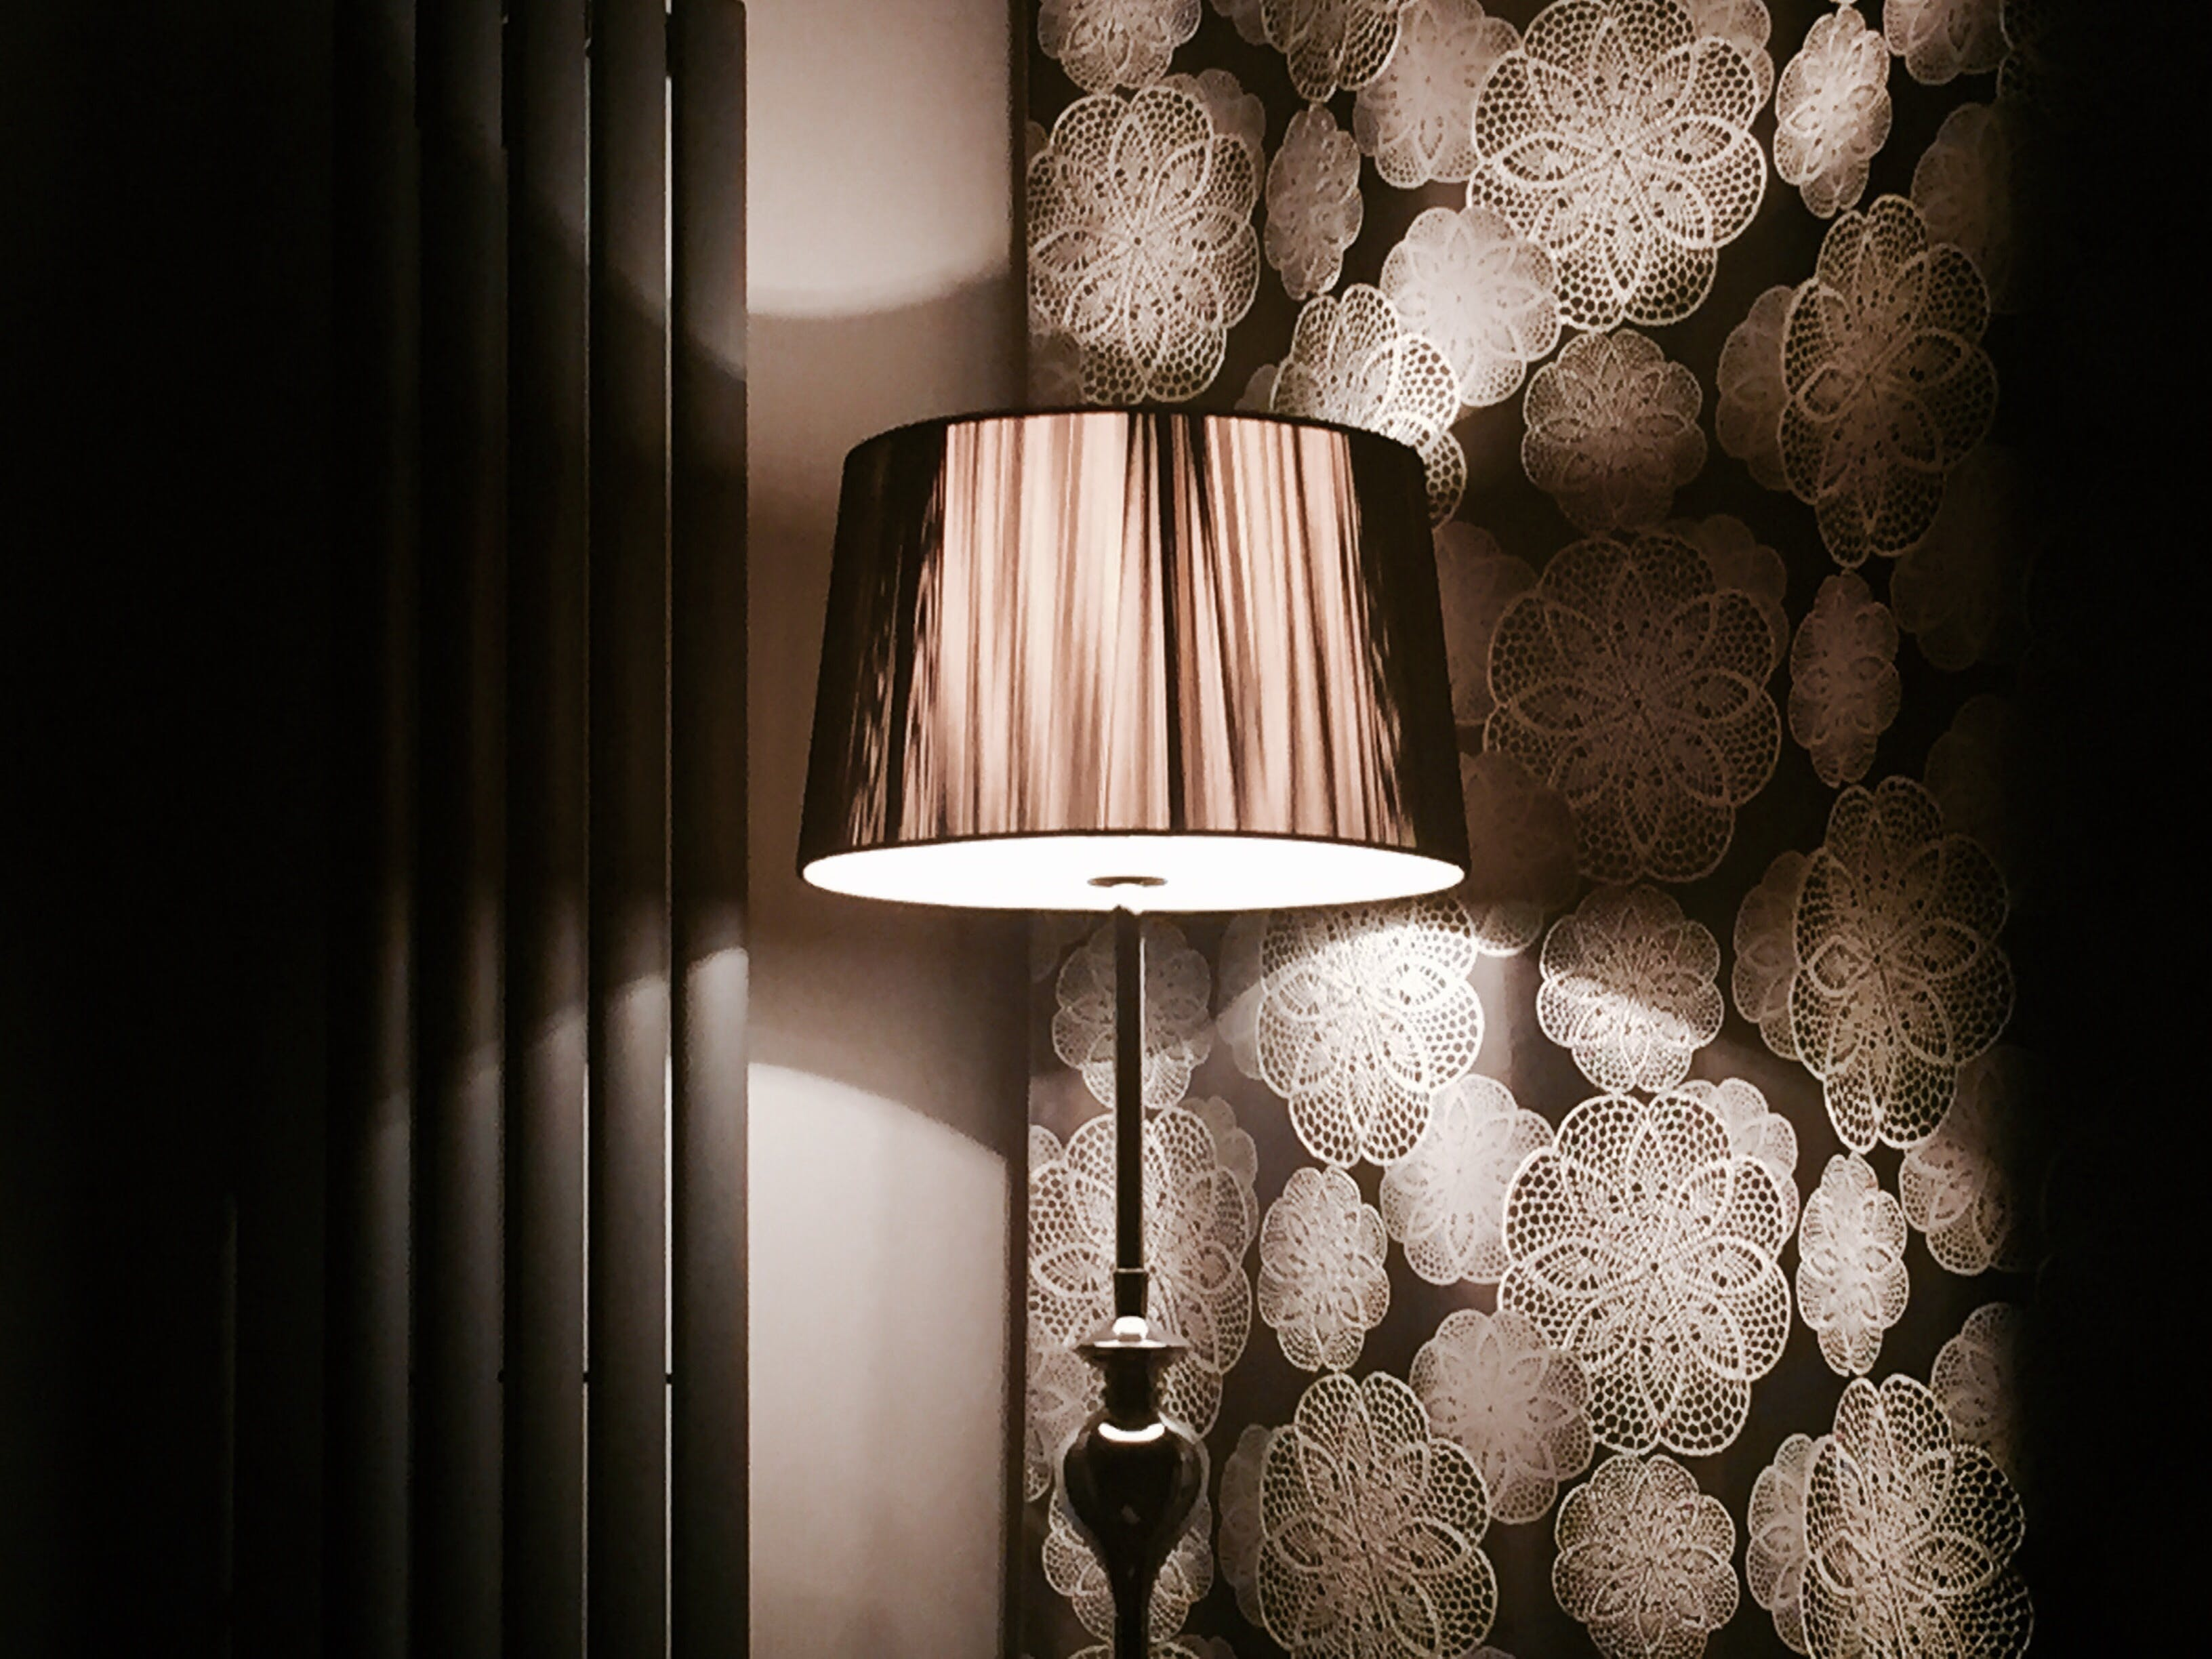 Lighted Brown and White Lamp Near Floral Wall